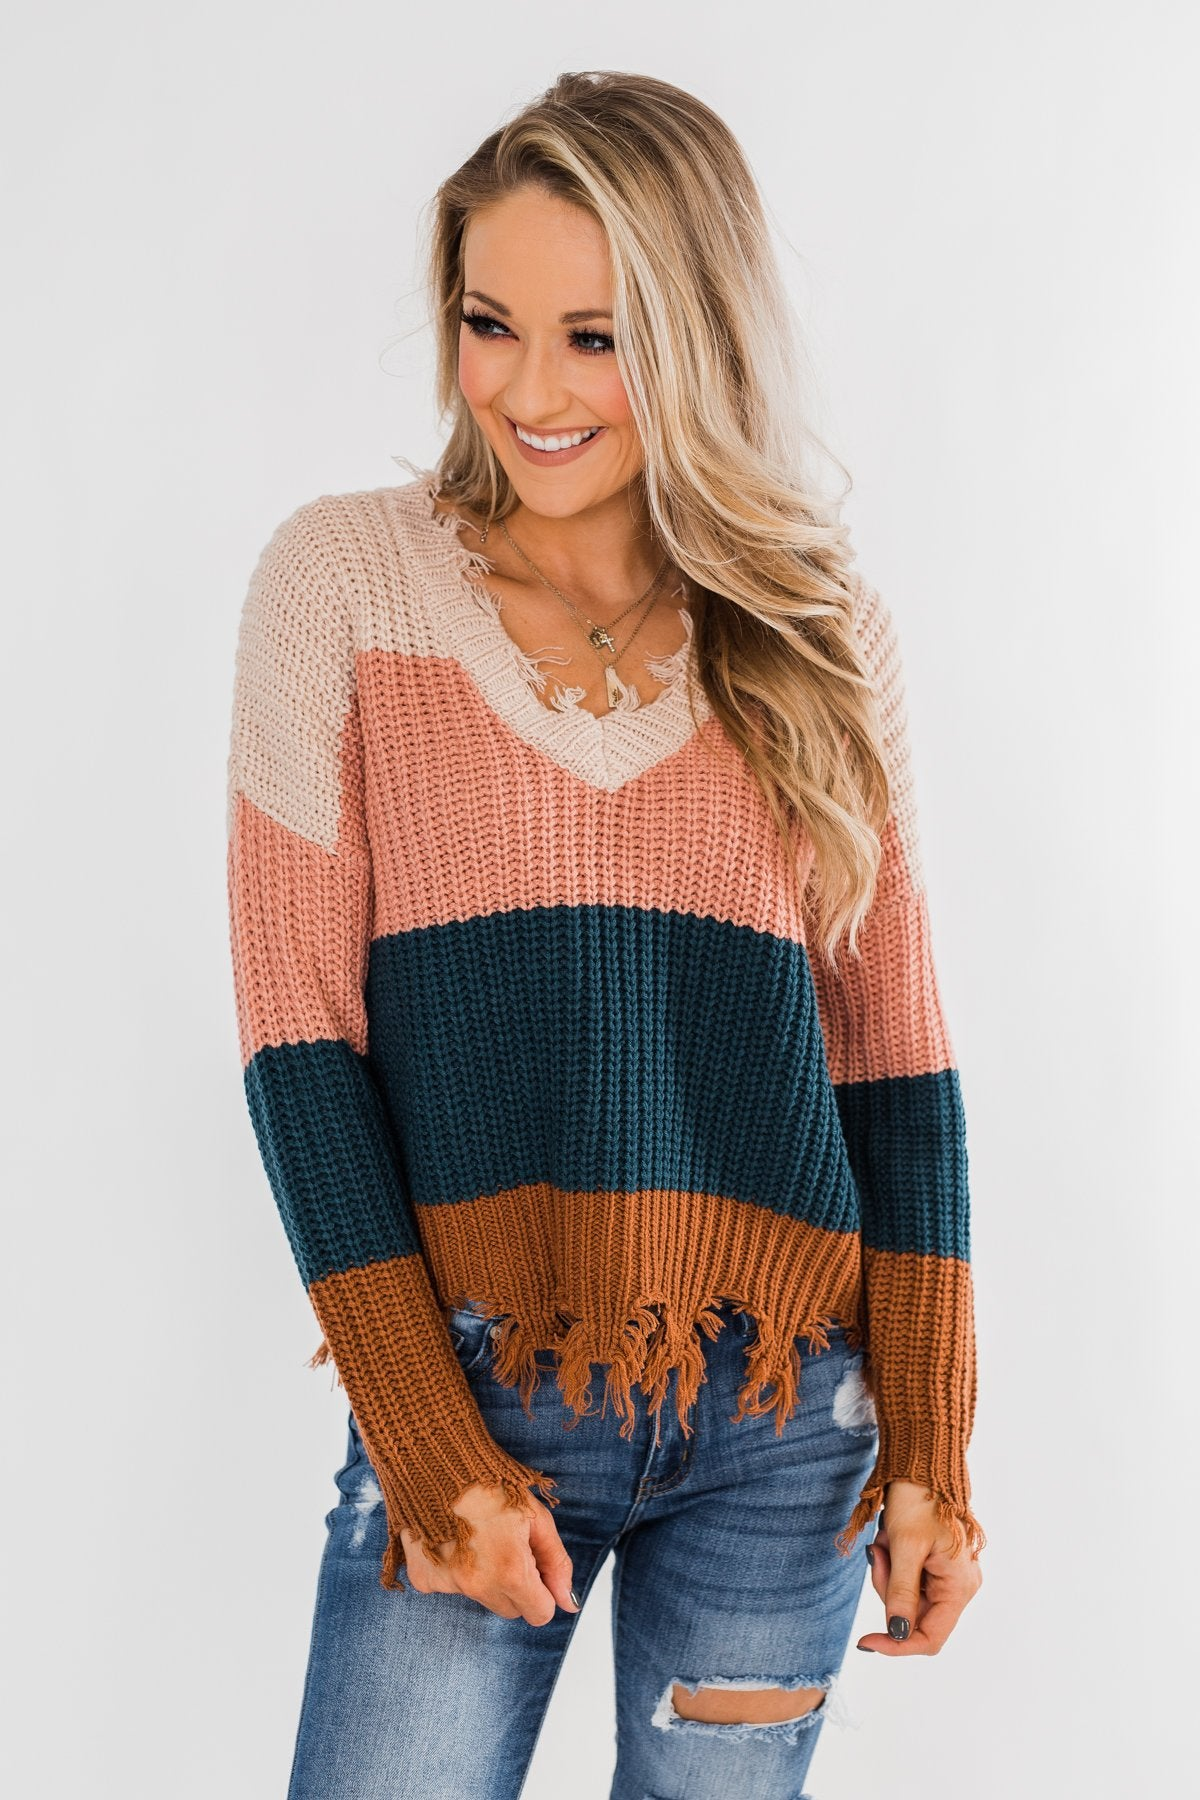 Warm & Cozy Distressed Color Block Sweater- Dark Teal Tones